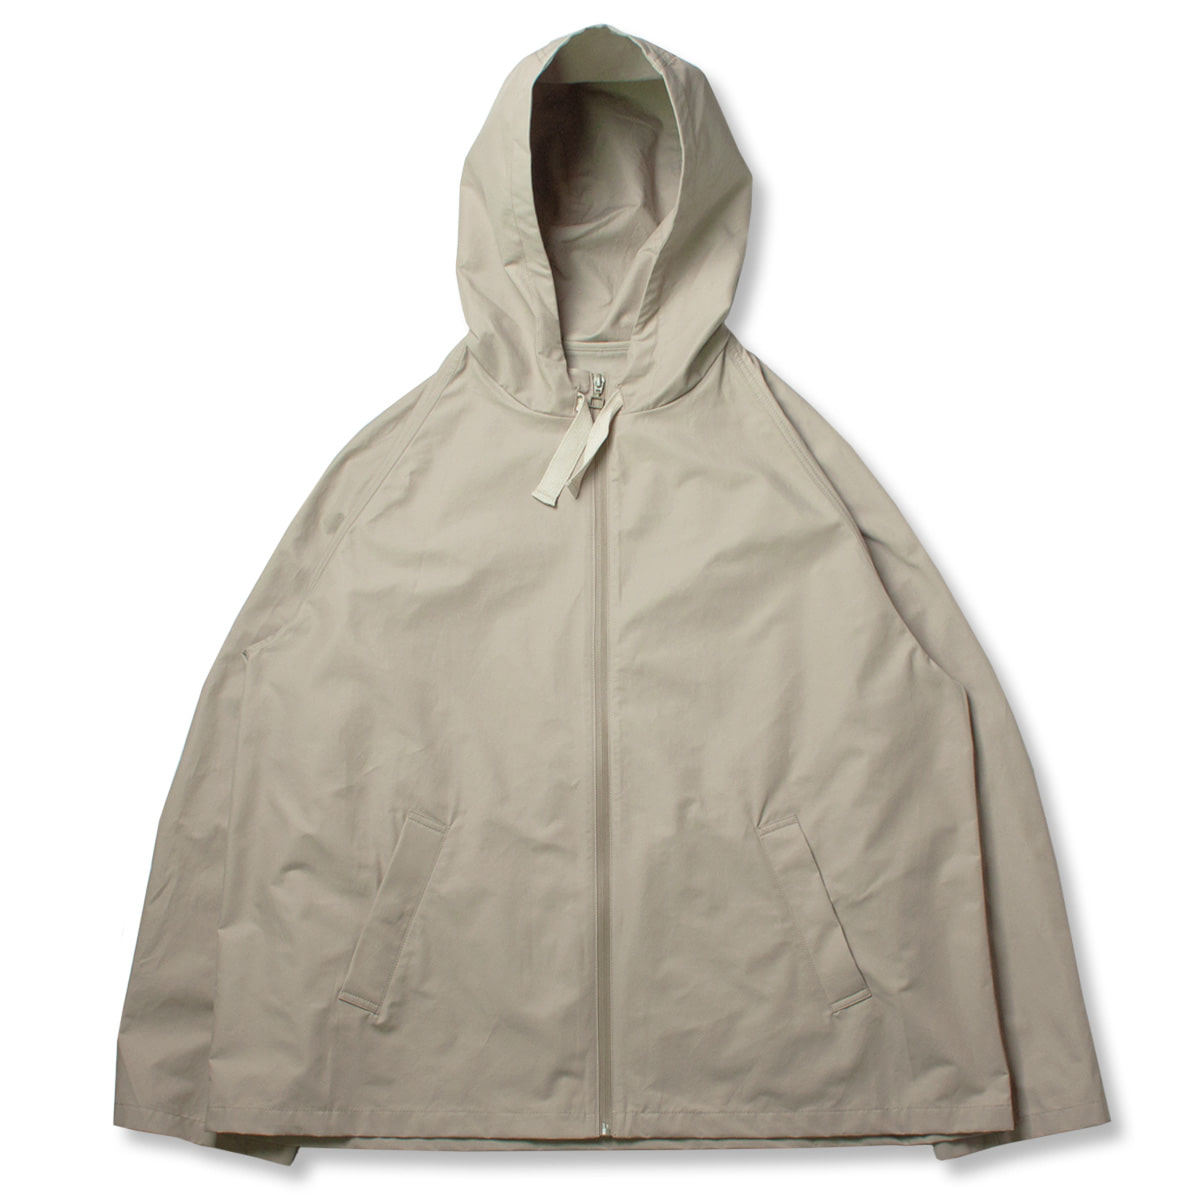 [STUDIO NICHOLSON] HOODED CROP JACKET 'BONE'